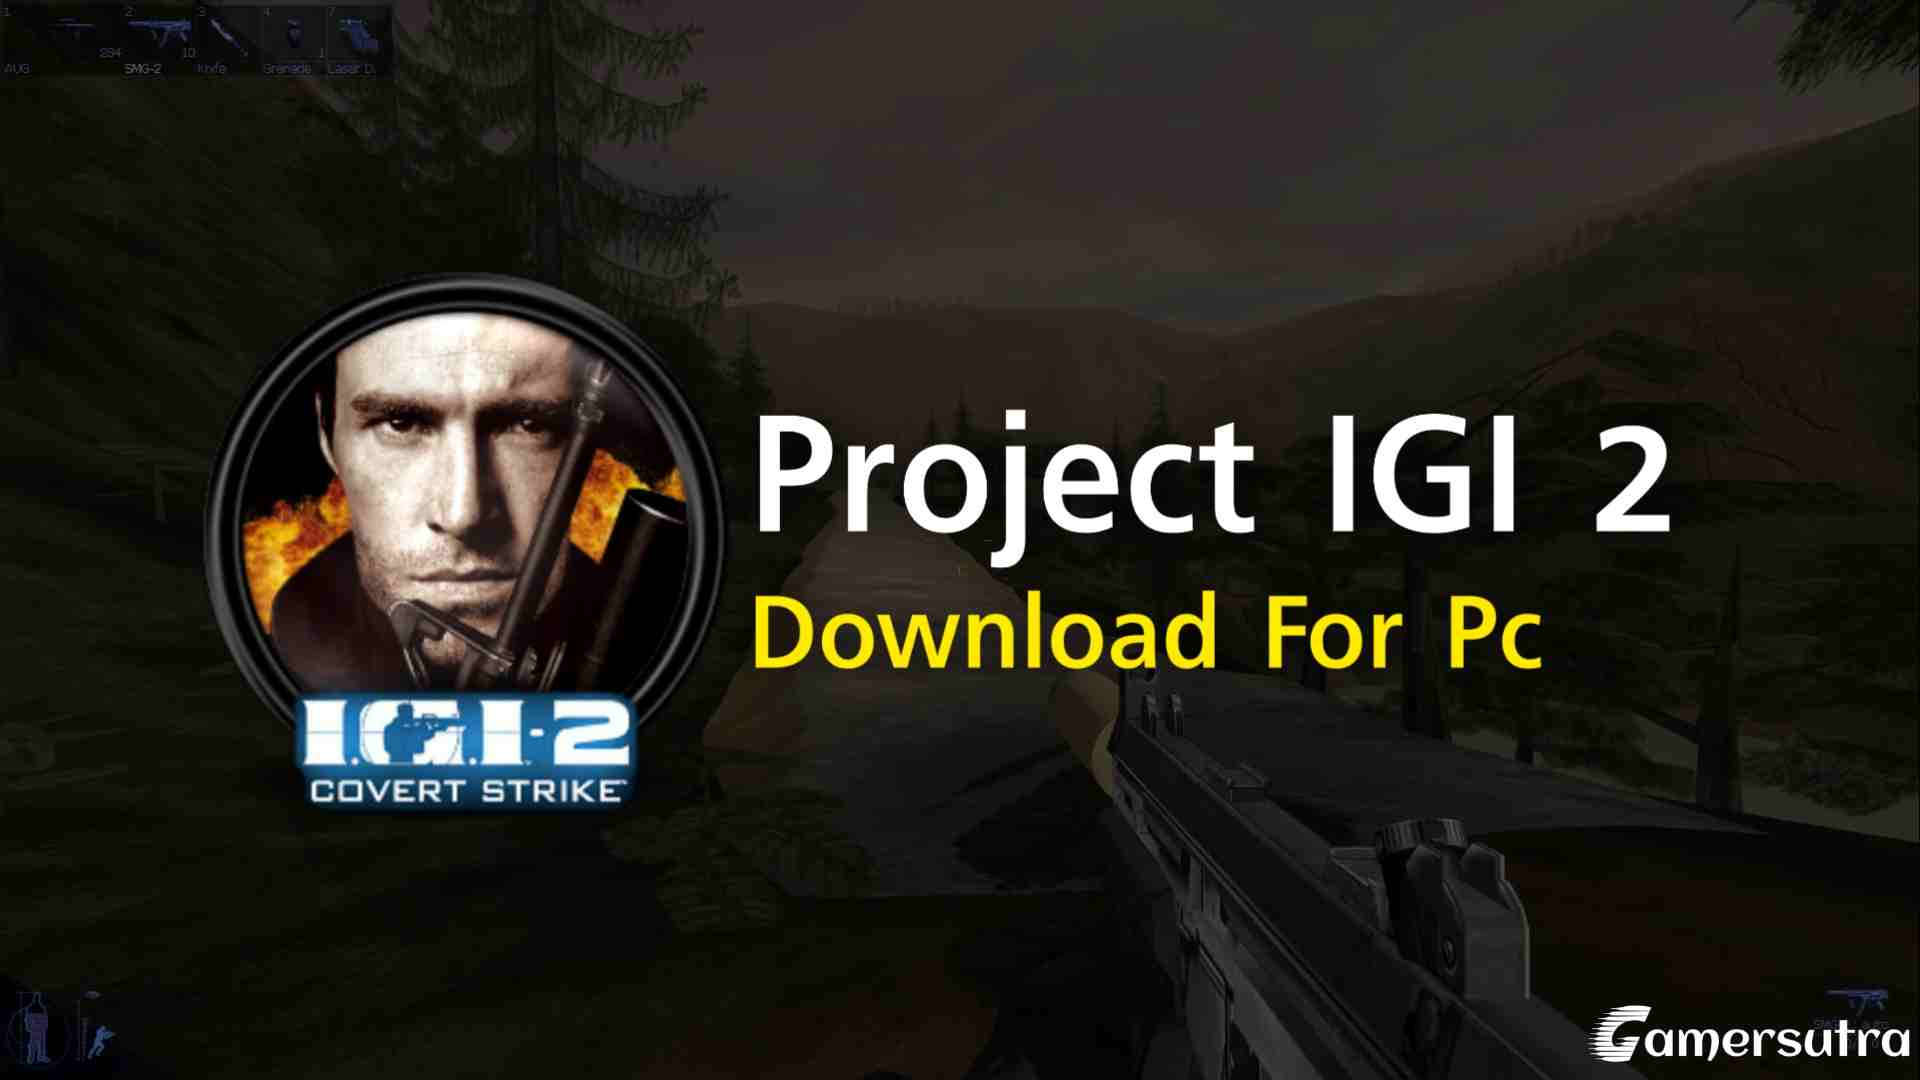 Project IGI 2 Download for PC Full Version In 2021